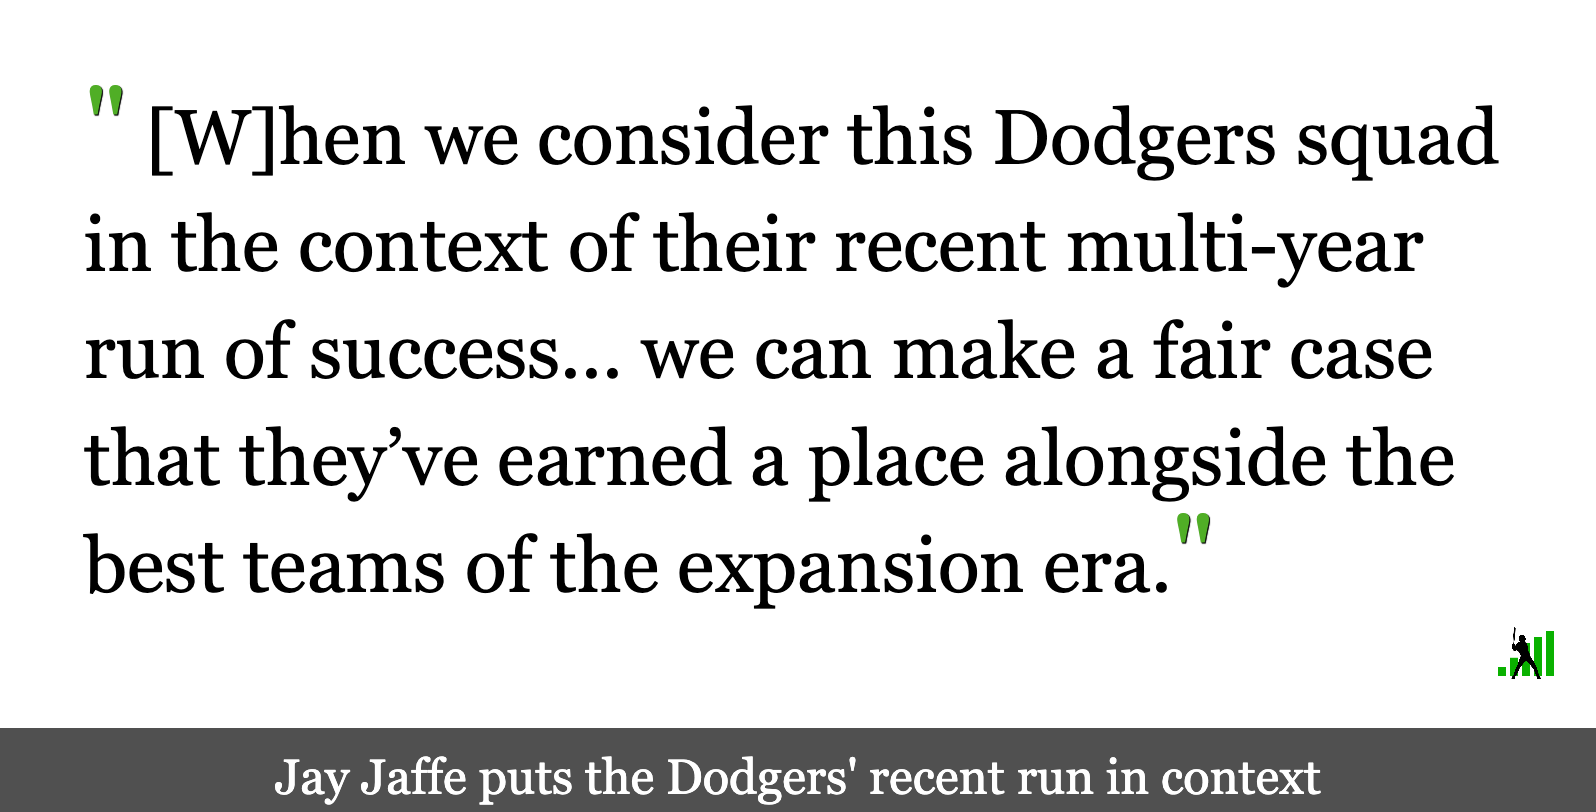 Making the Case for the 2020 Dodgers' Place in History